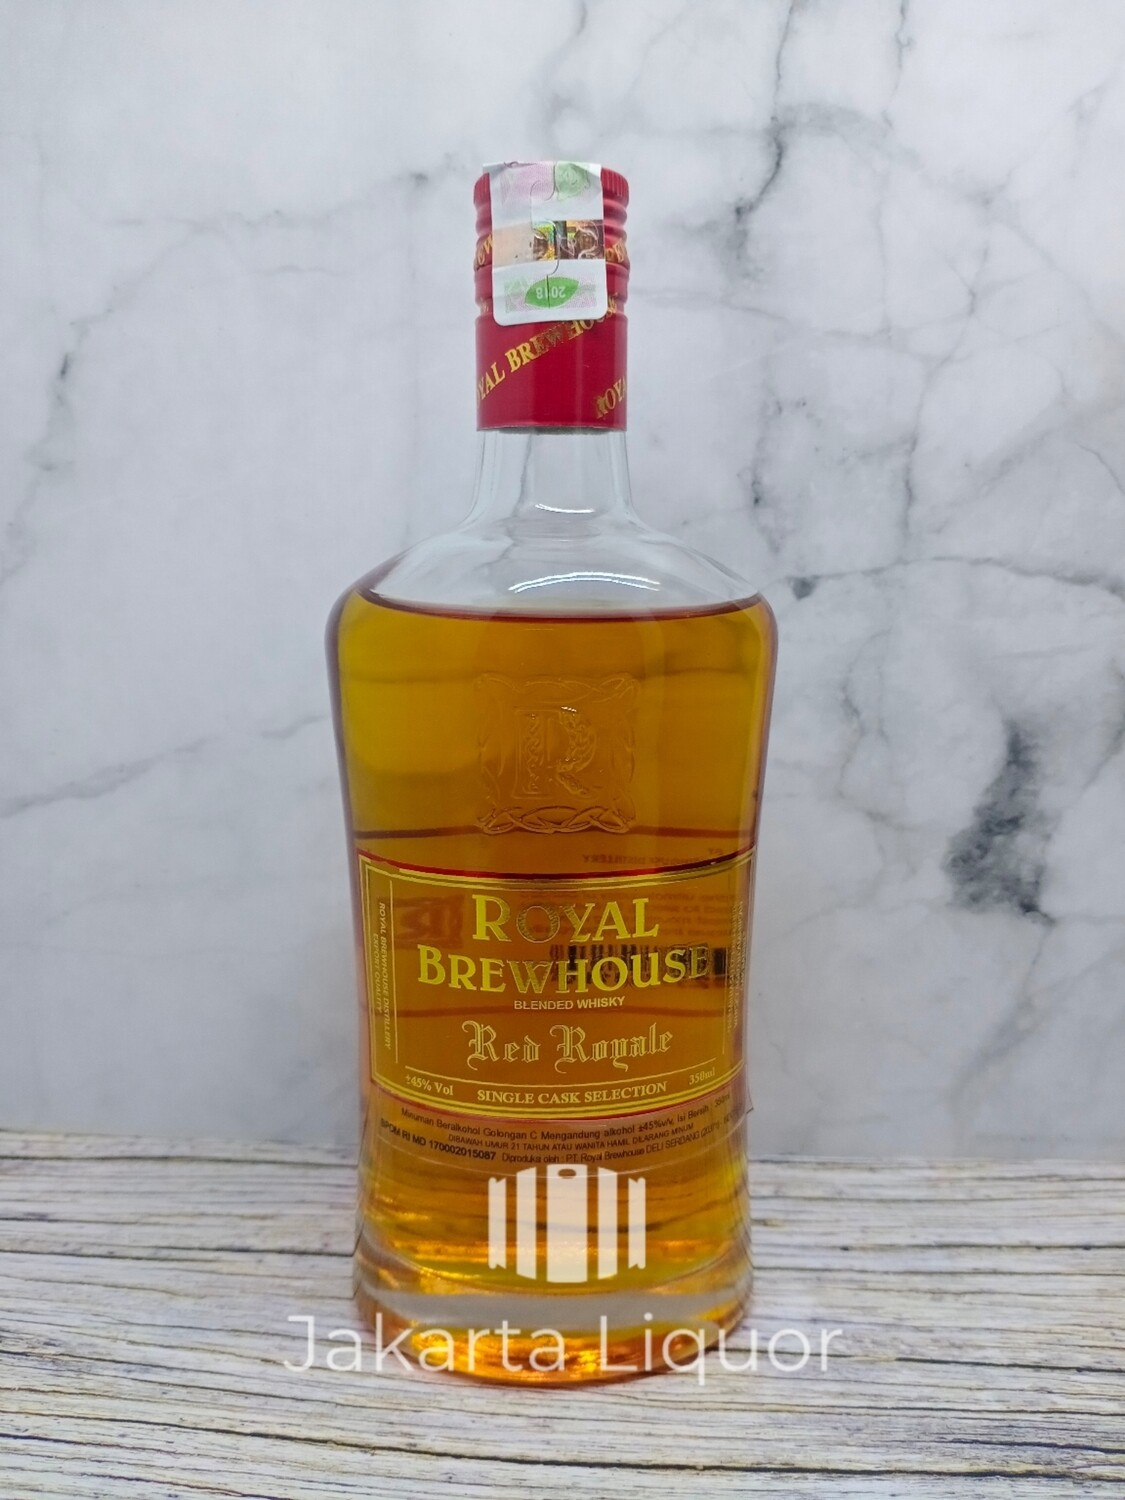 Red Royal Brewhouse Blended Whisky